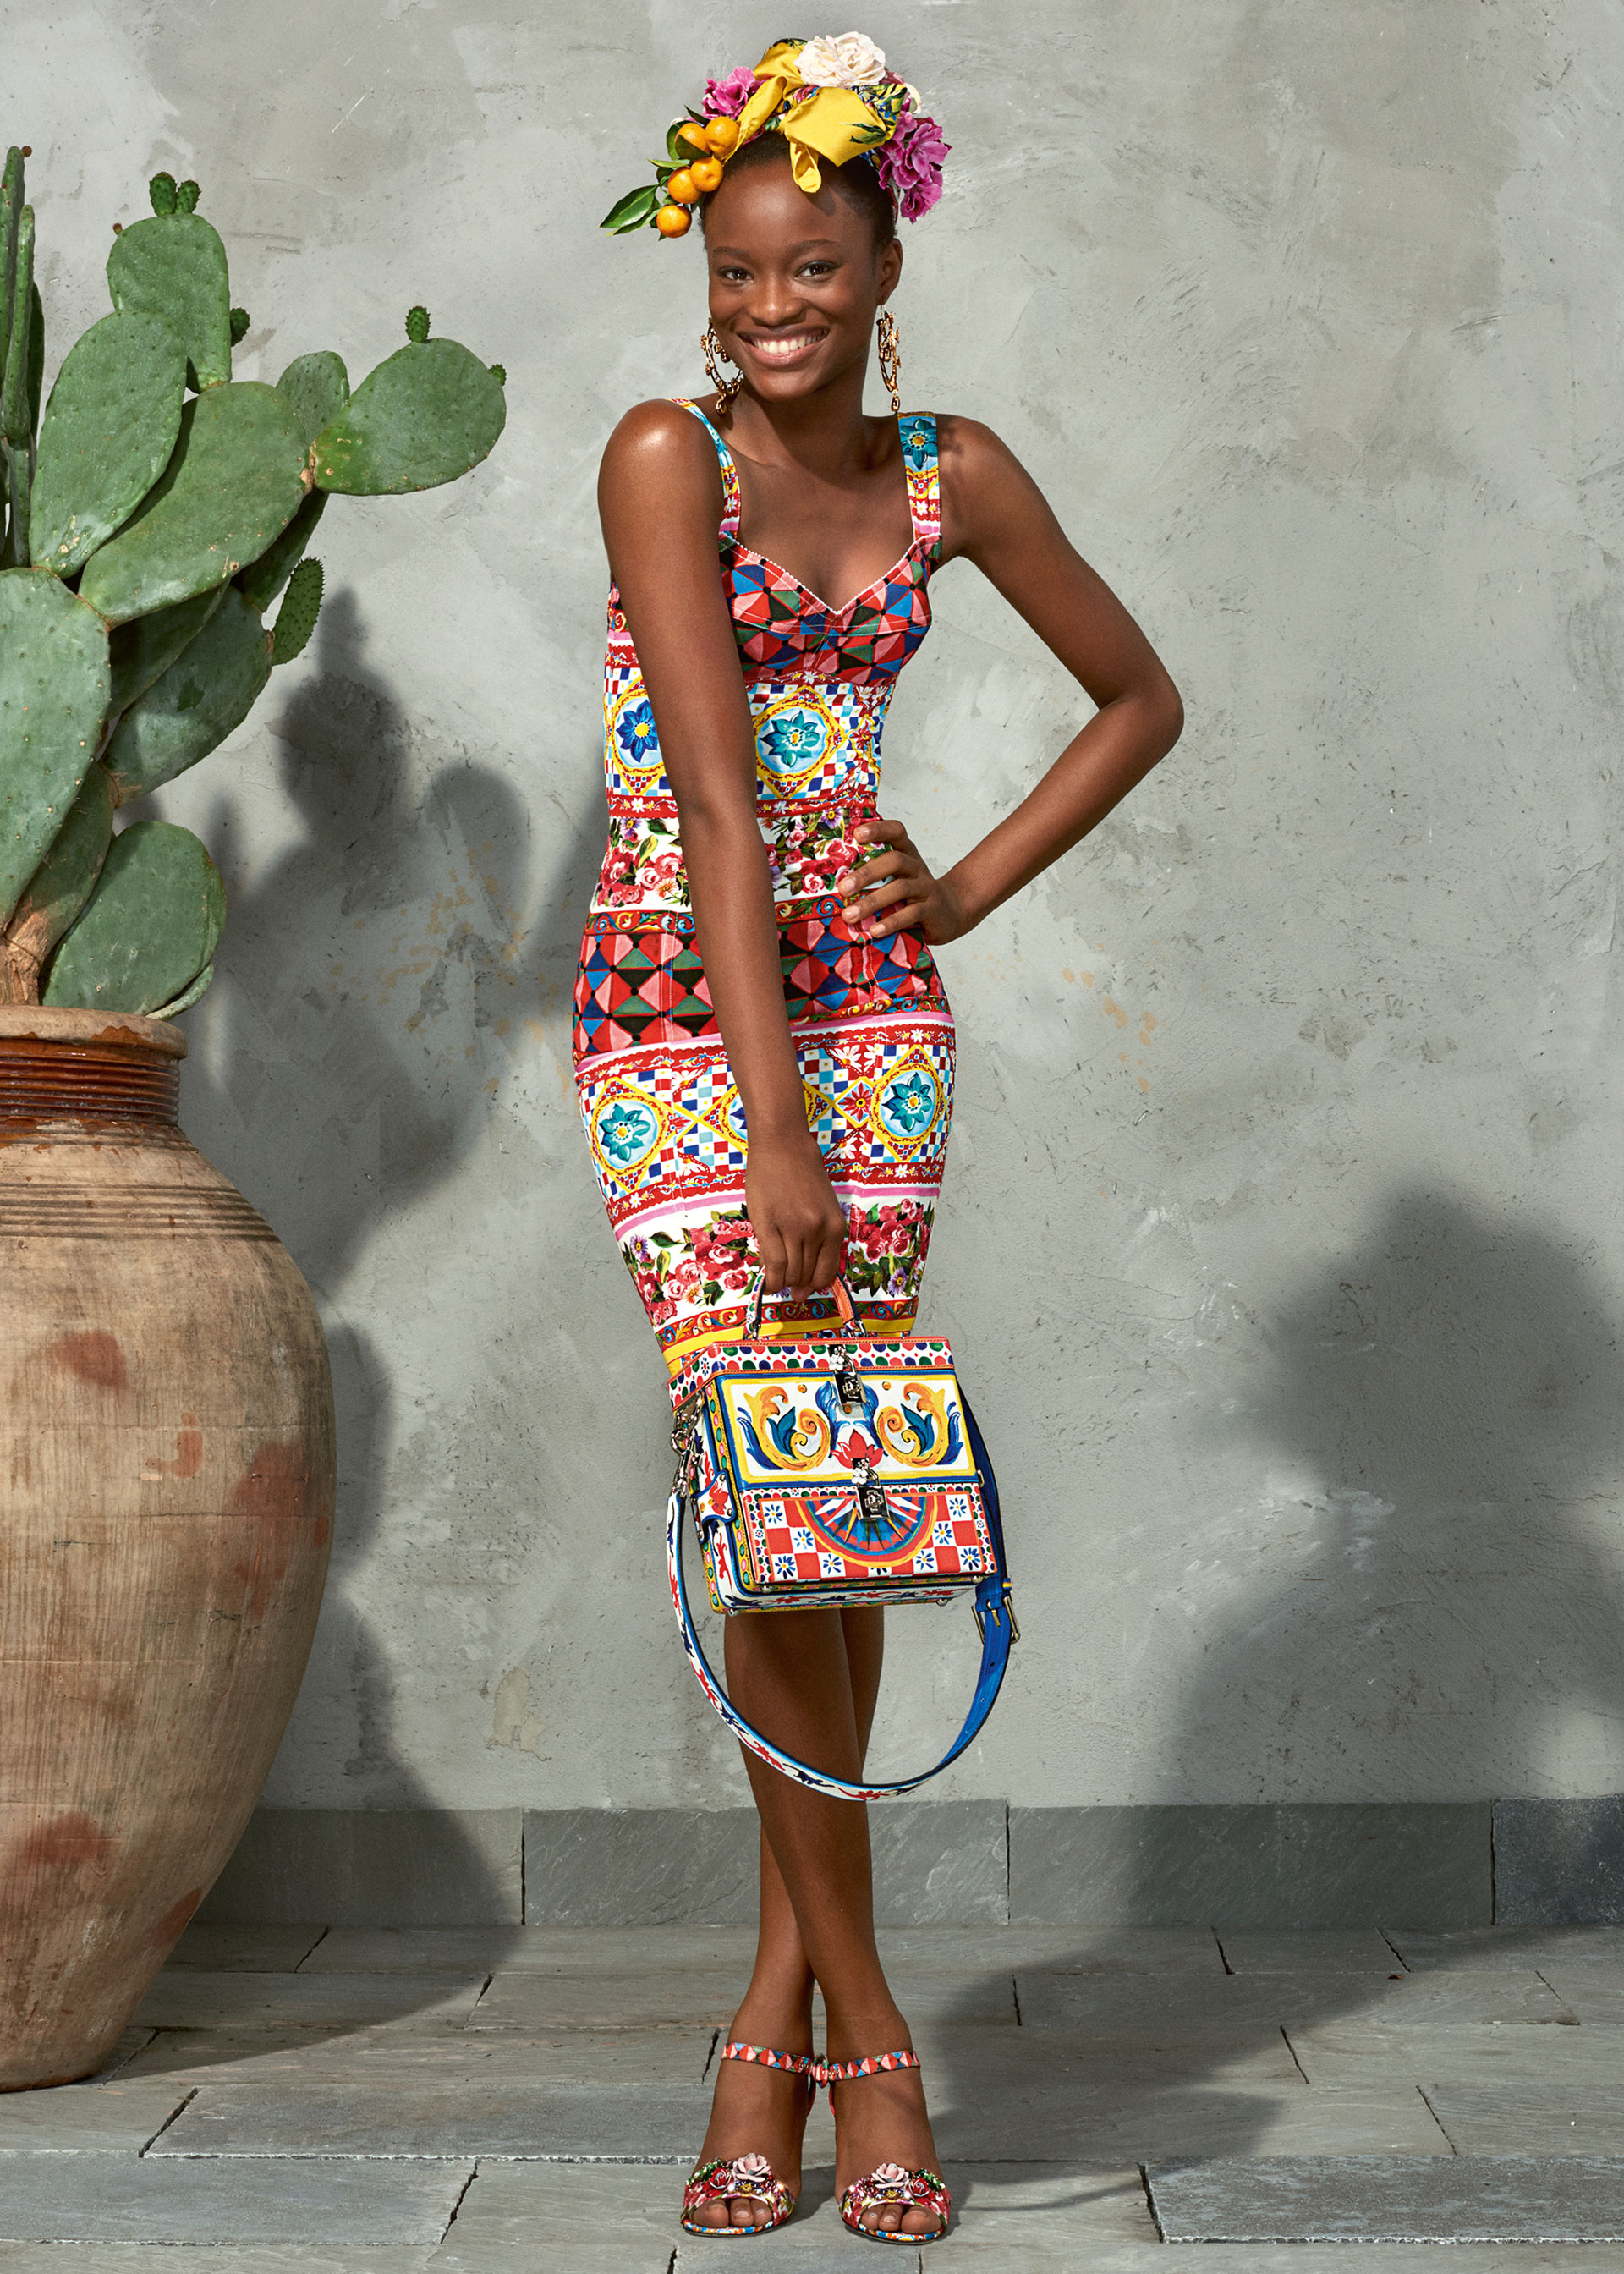 dolce and gabbana summer 2017 woman collection 88 - Dolce & Gabbana/Spring Summer 2017 Collection/ Mambo